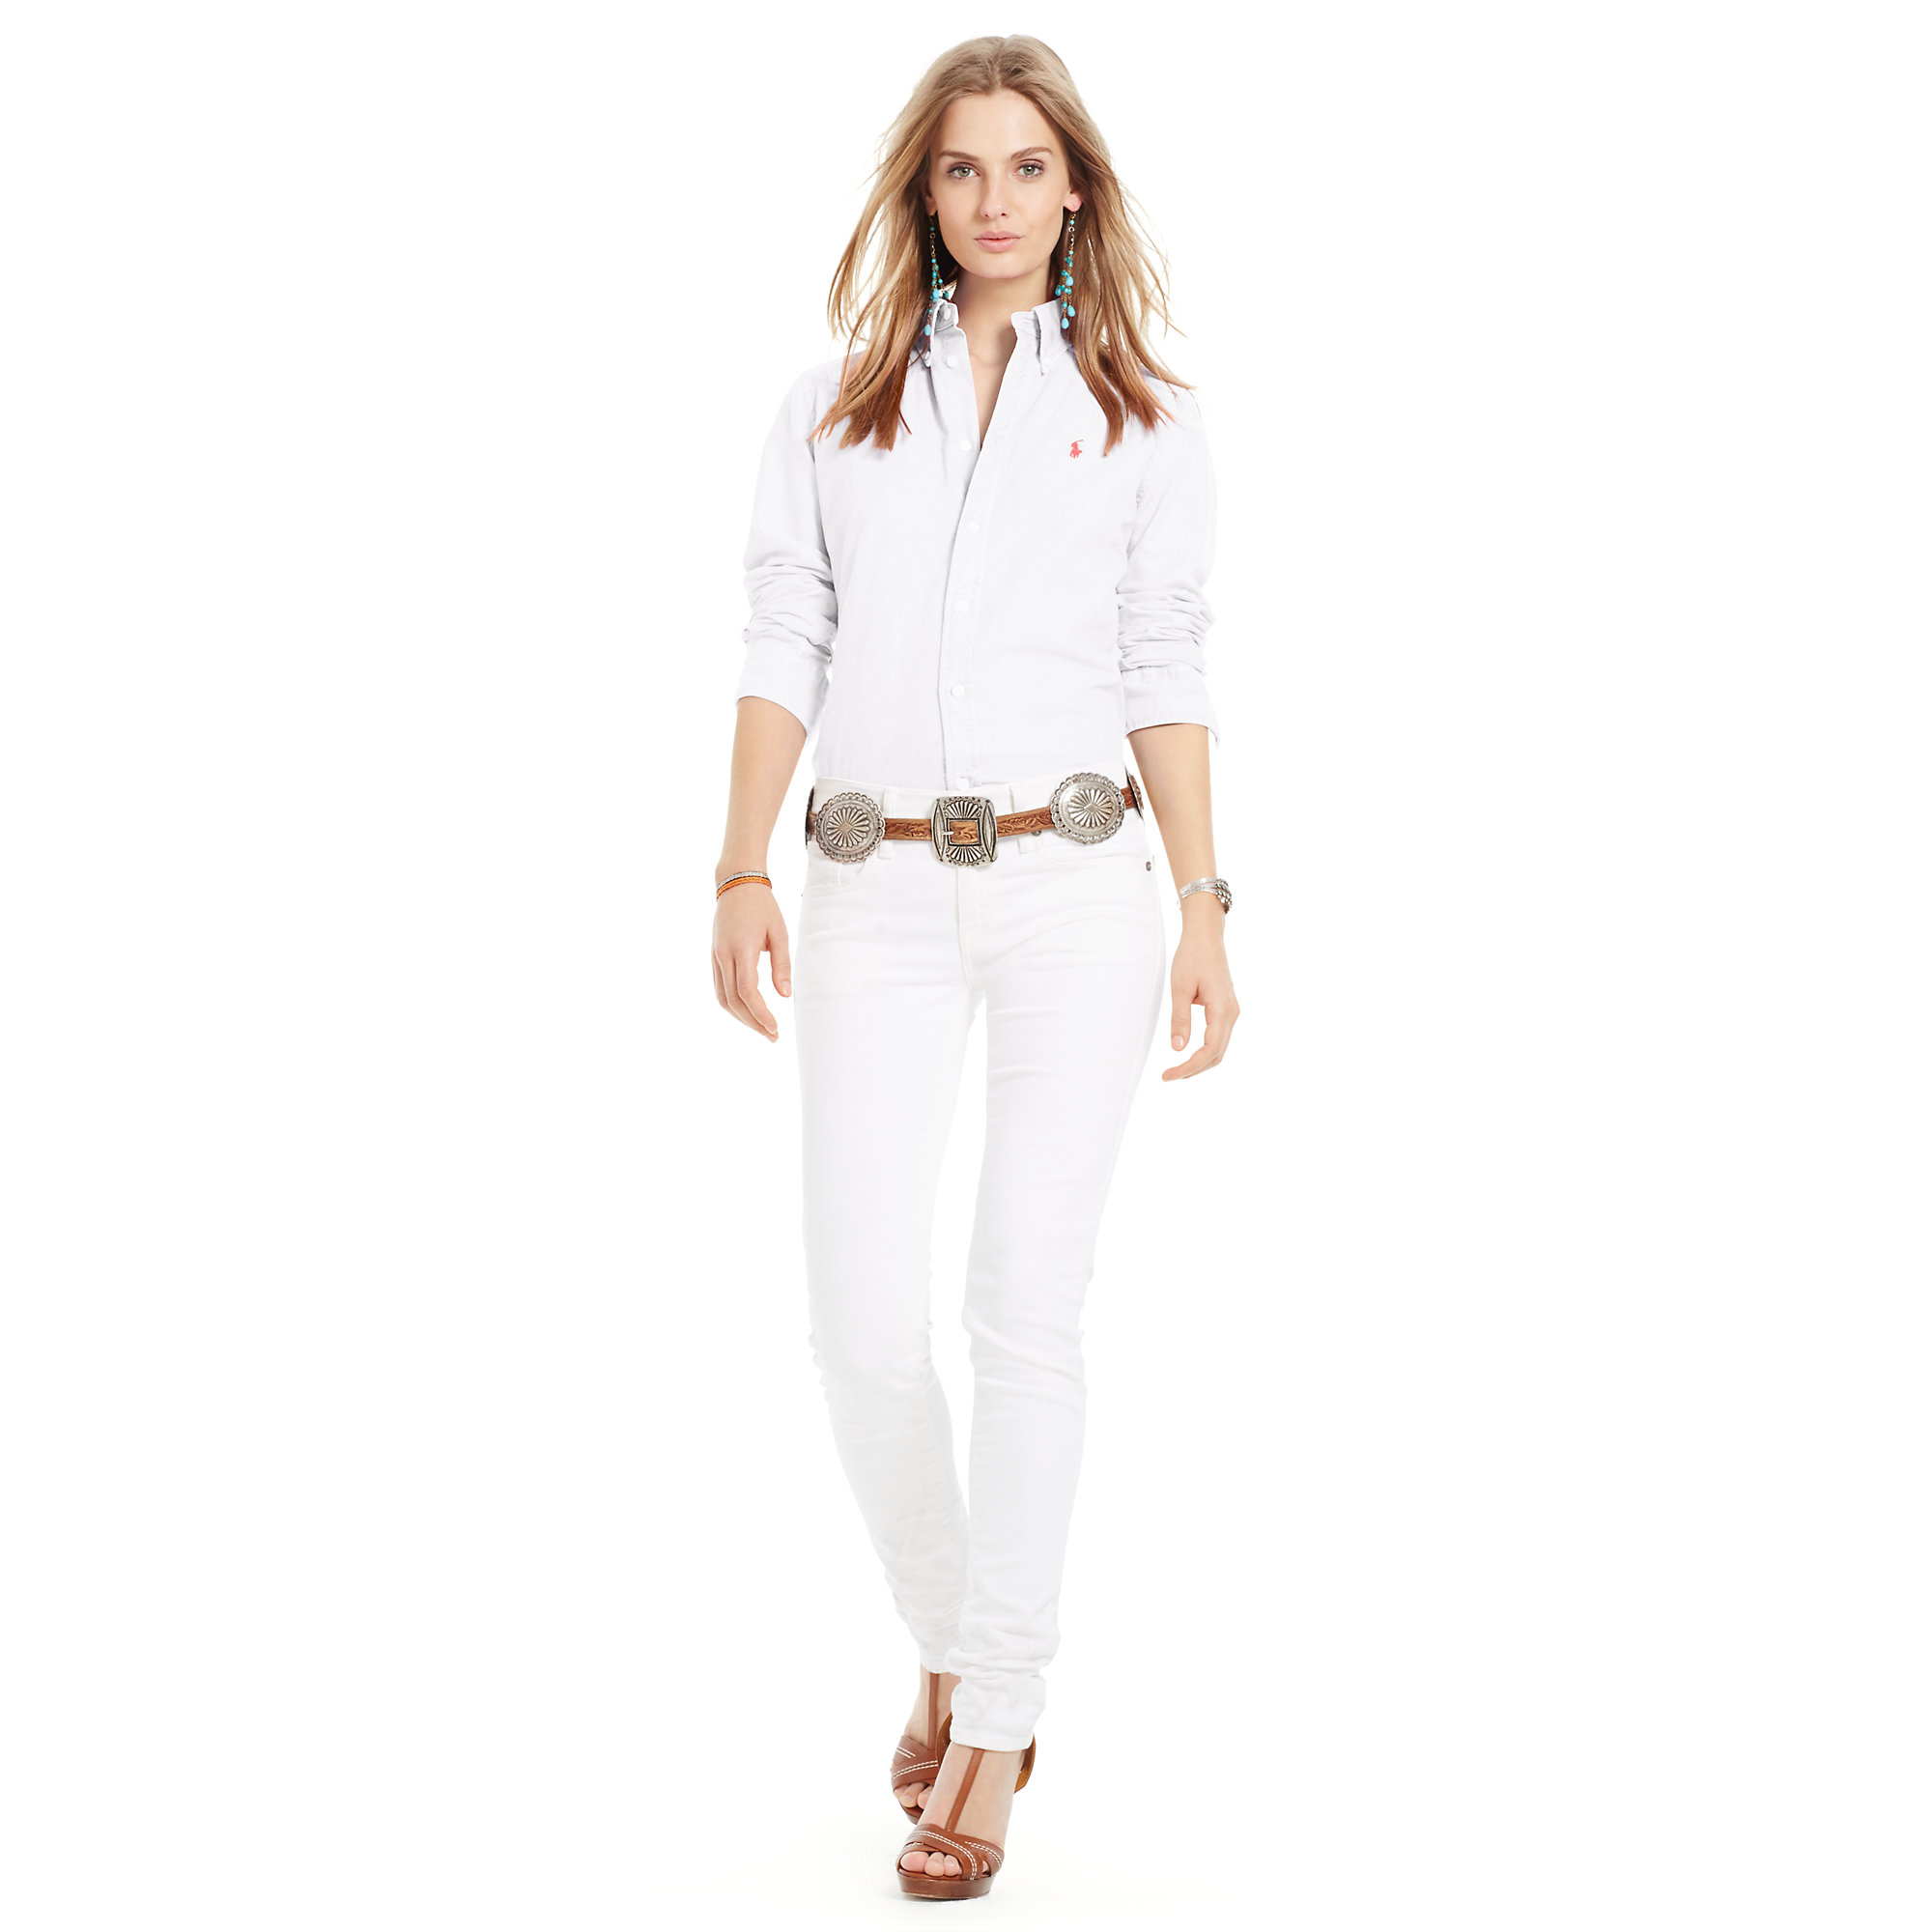 polo ralph lauren custom fit oxford shirt in white lyst. Black Bedroom Furniture Sets. Home Design Ideas